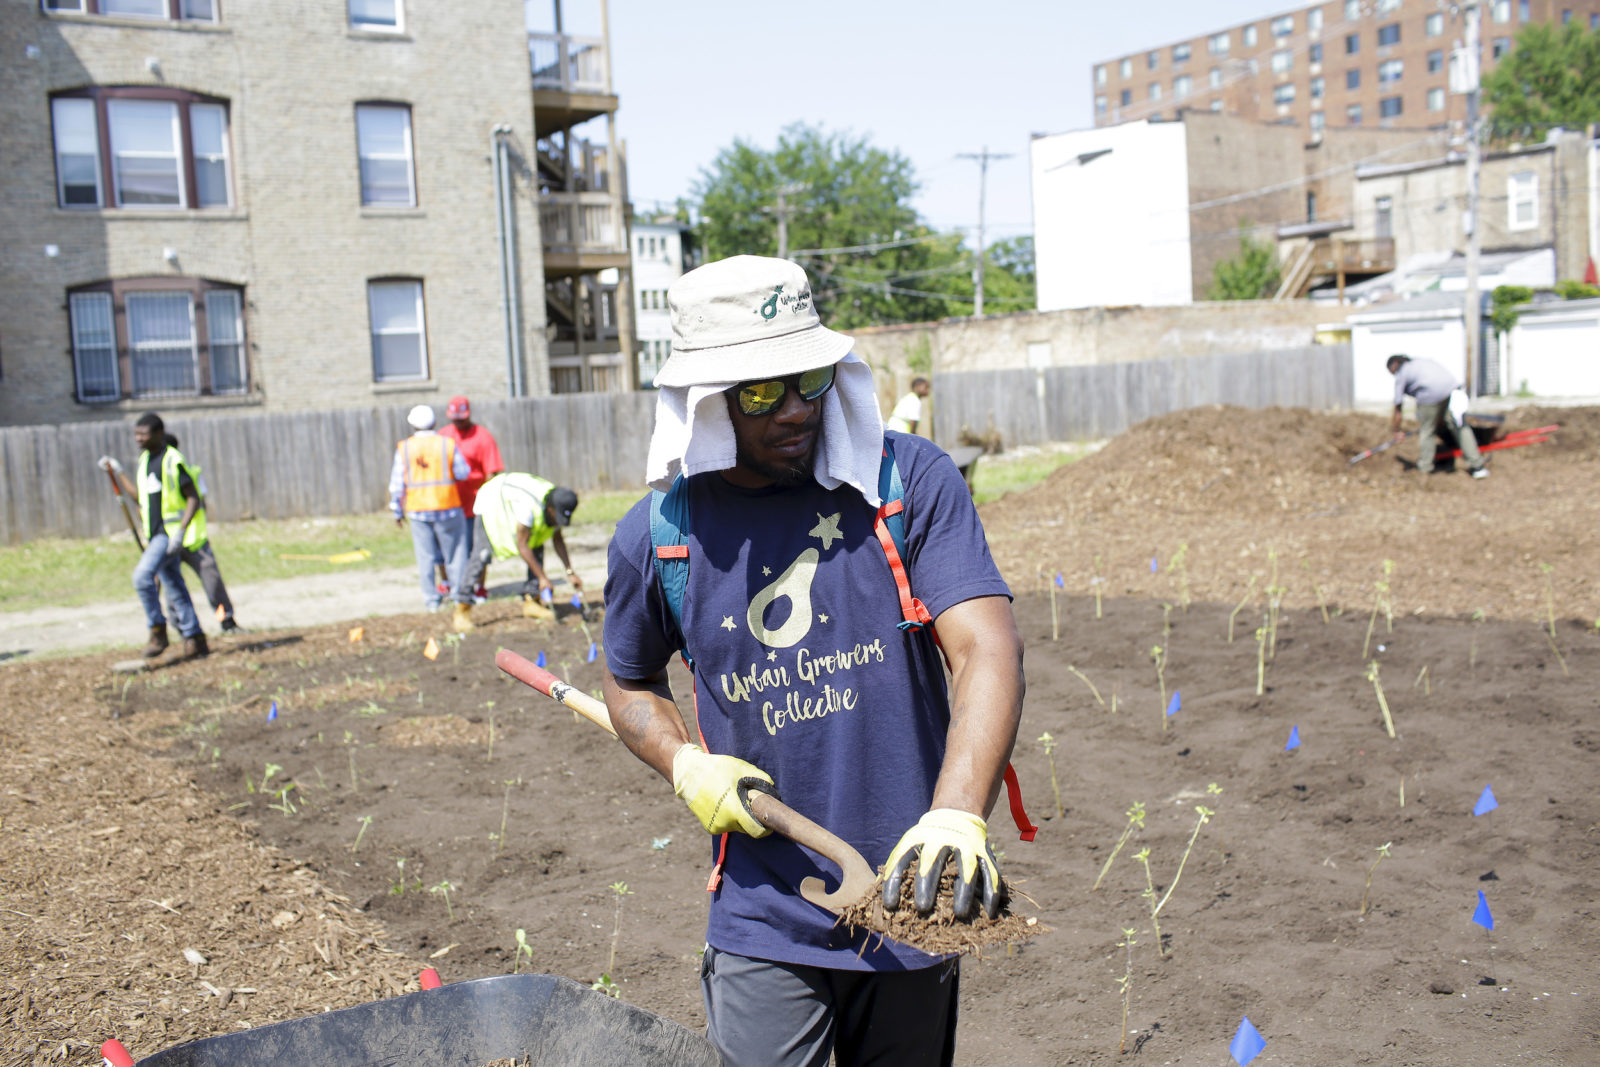 Ashanti Randolph (above) from Urban Growers Collective places mulch around freshly planted sunflowers in one of the lots, in the 6000 block of South Dr. Martin Luther King Jr. Drive.